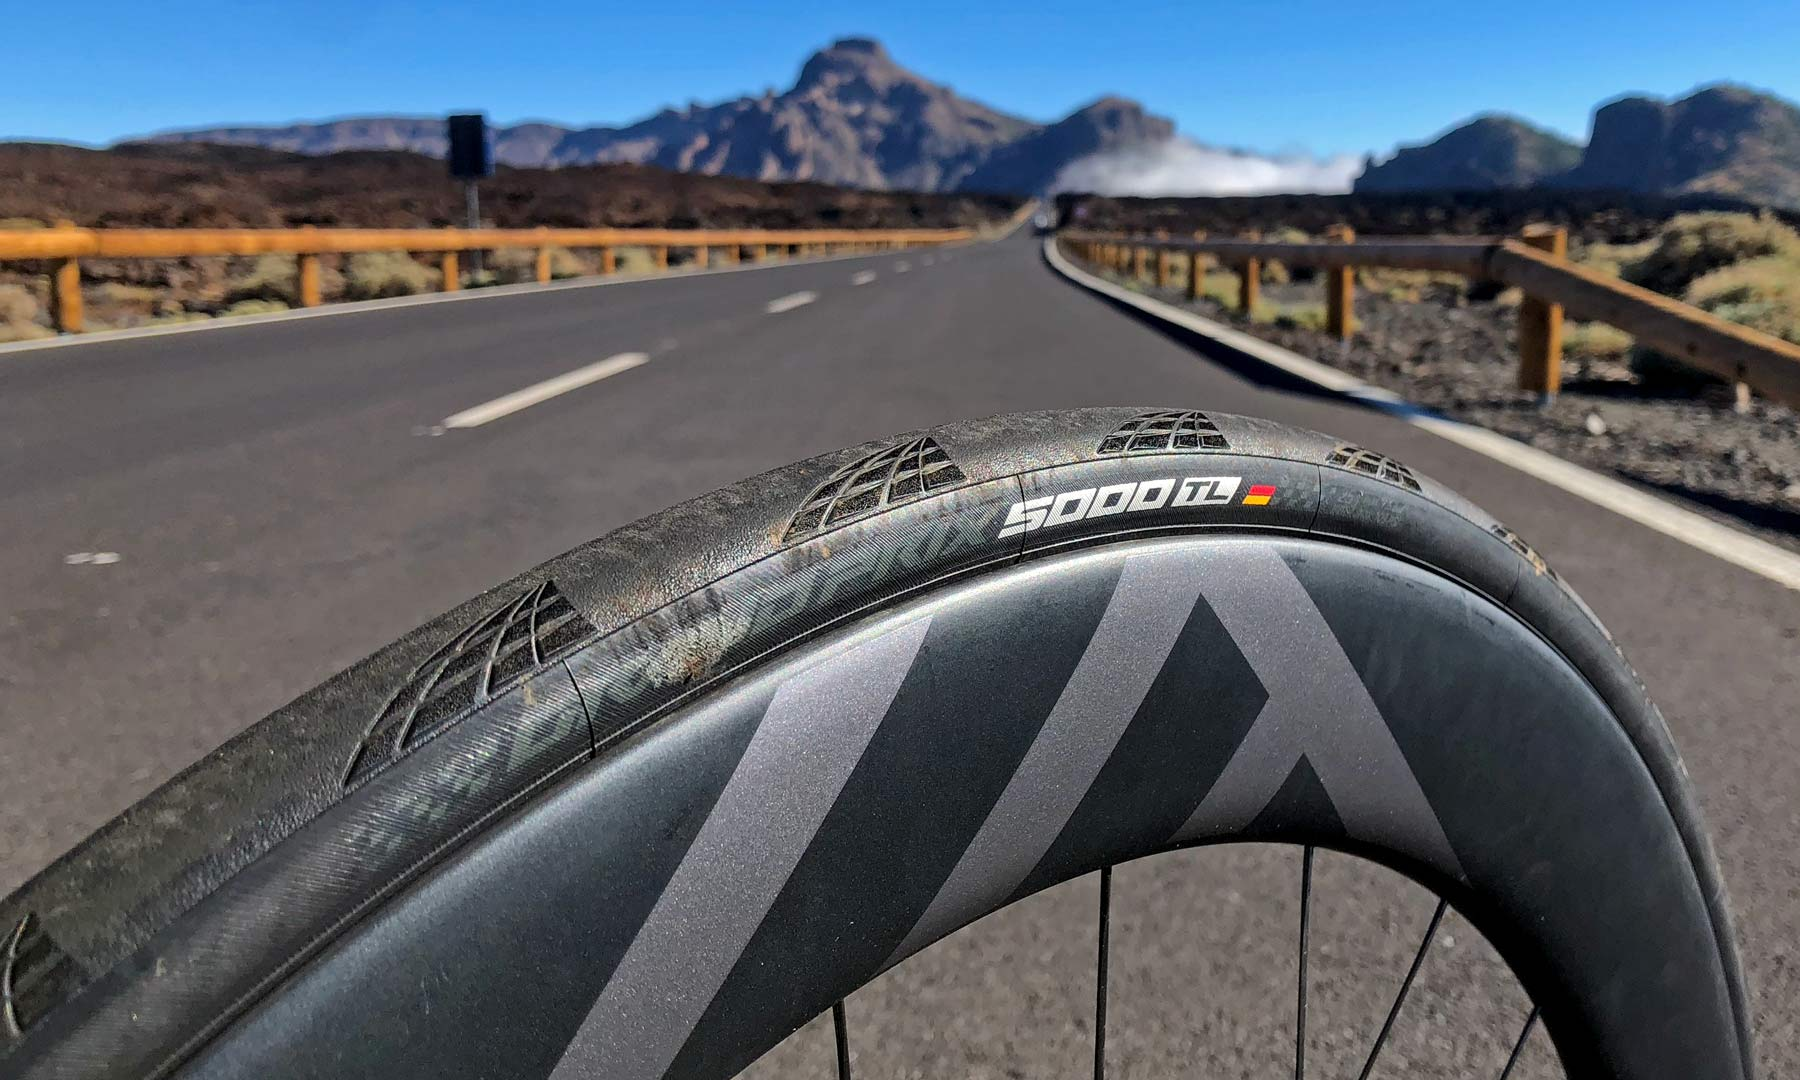 Continental GP 5000 TL goes tubeless, finally! New, modern